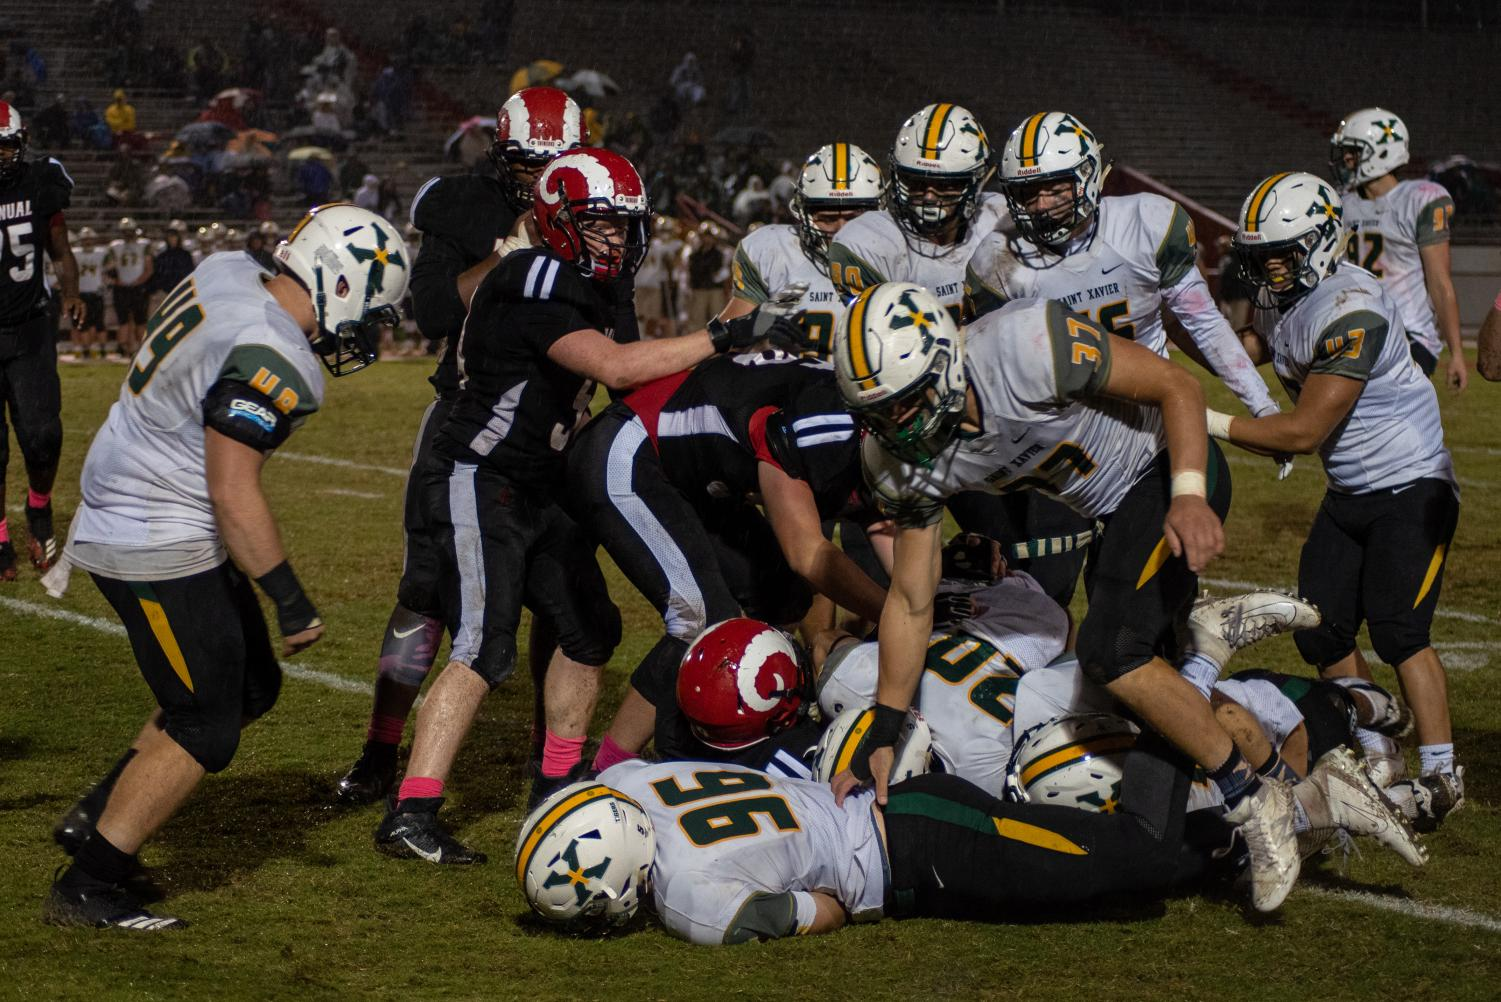 St. X's defense tackles Manual's running back. Photo by Cesca Campisano.